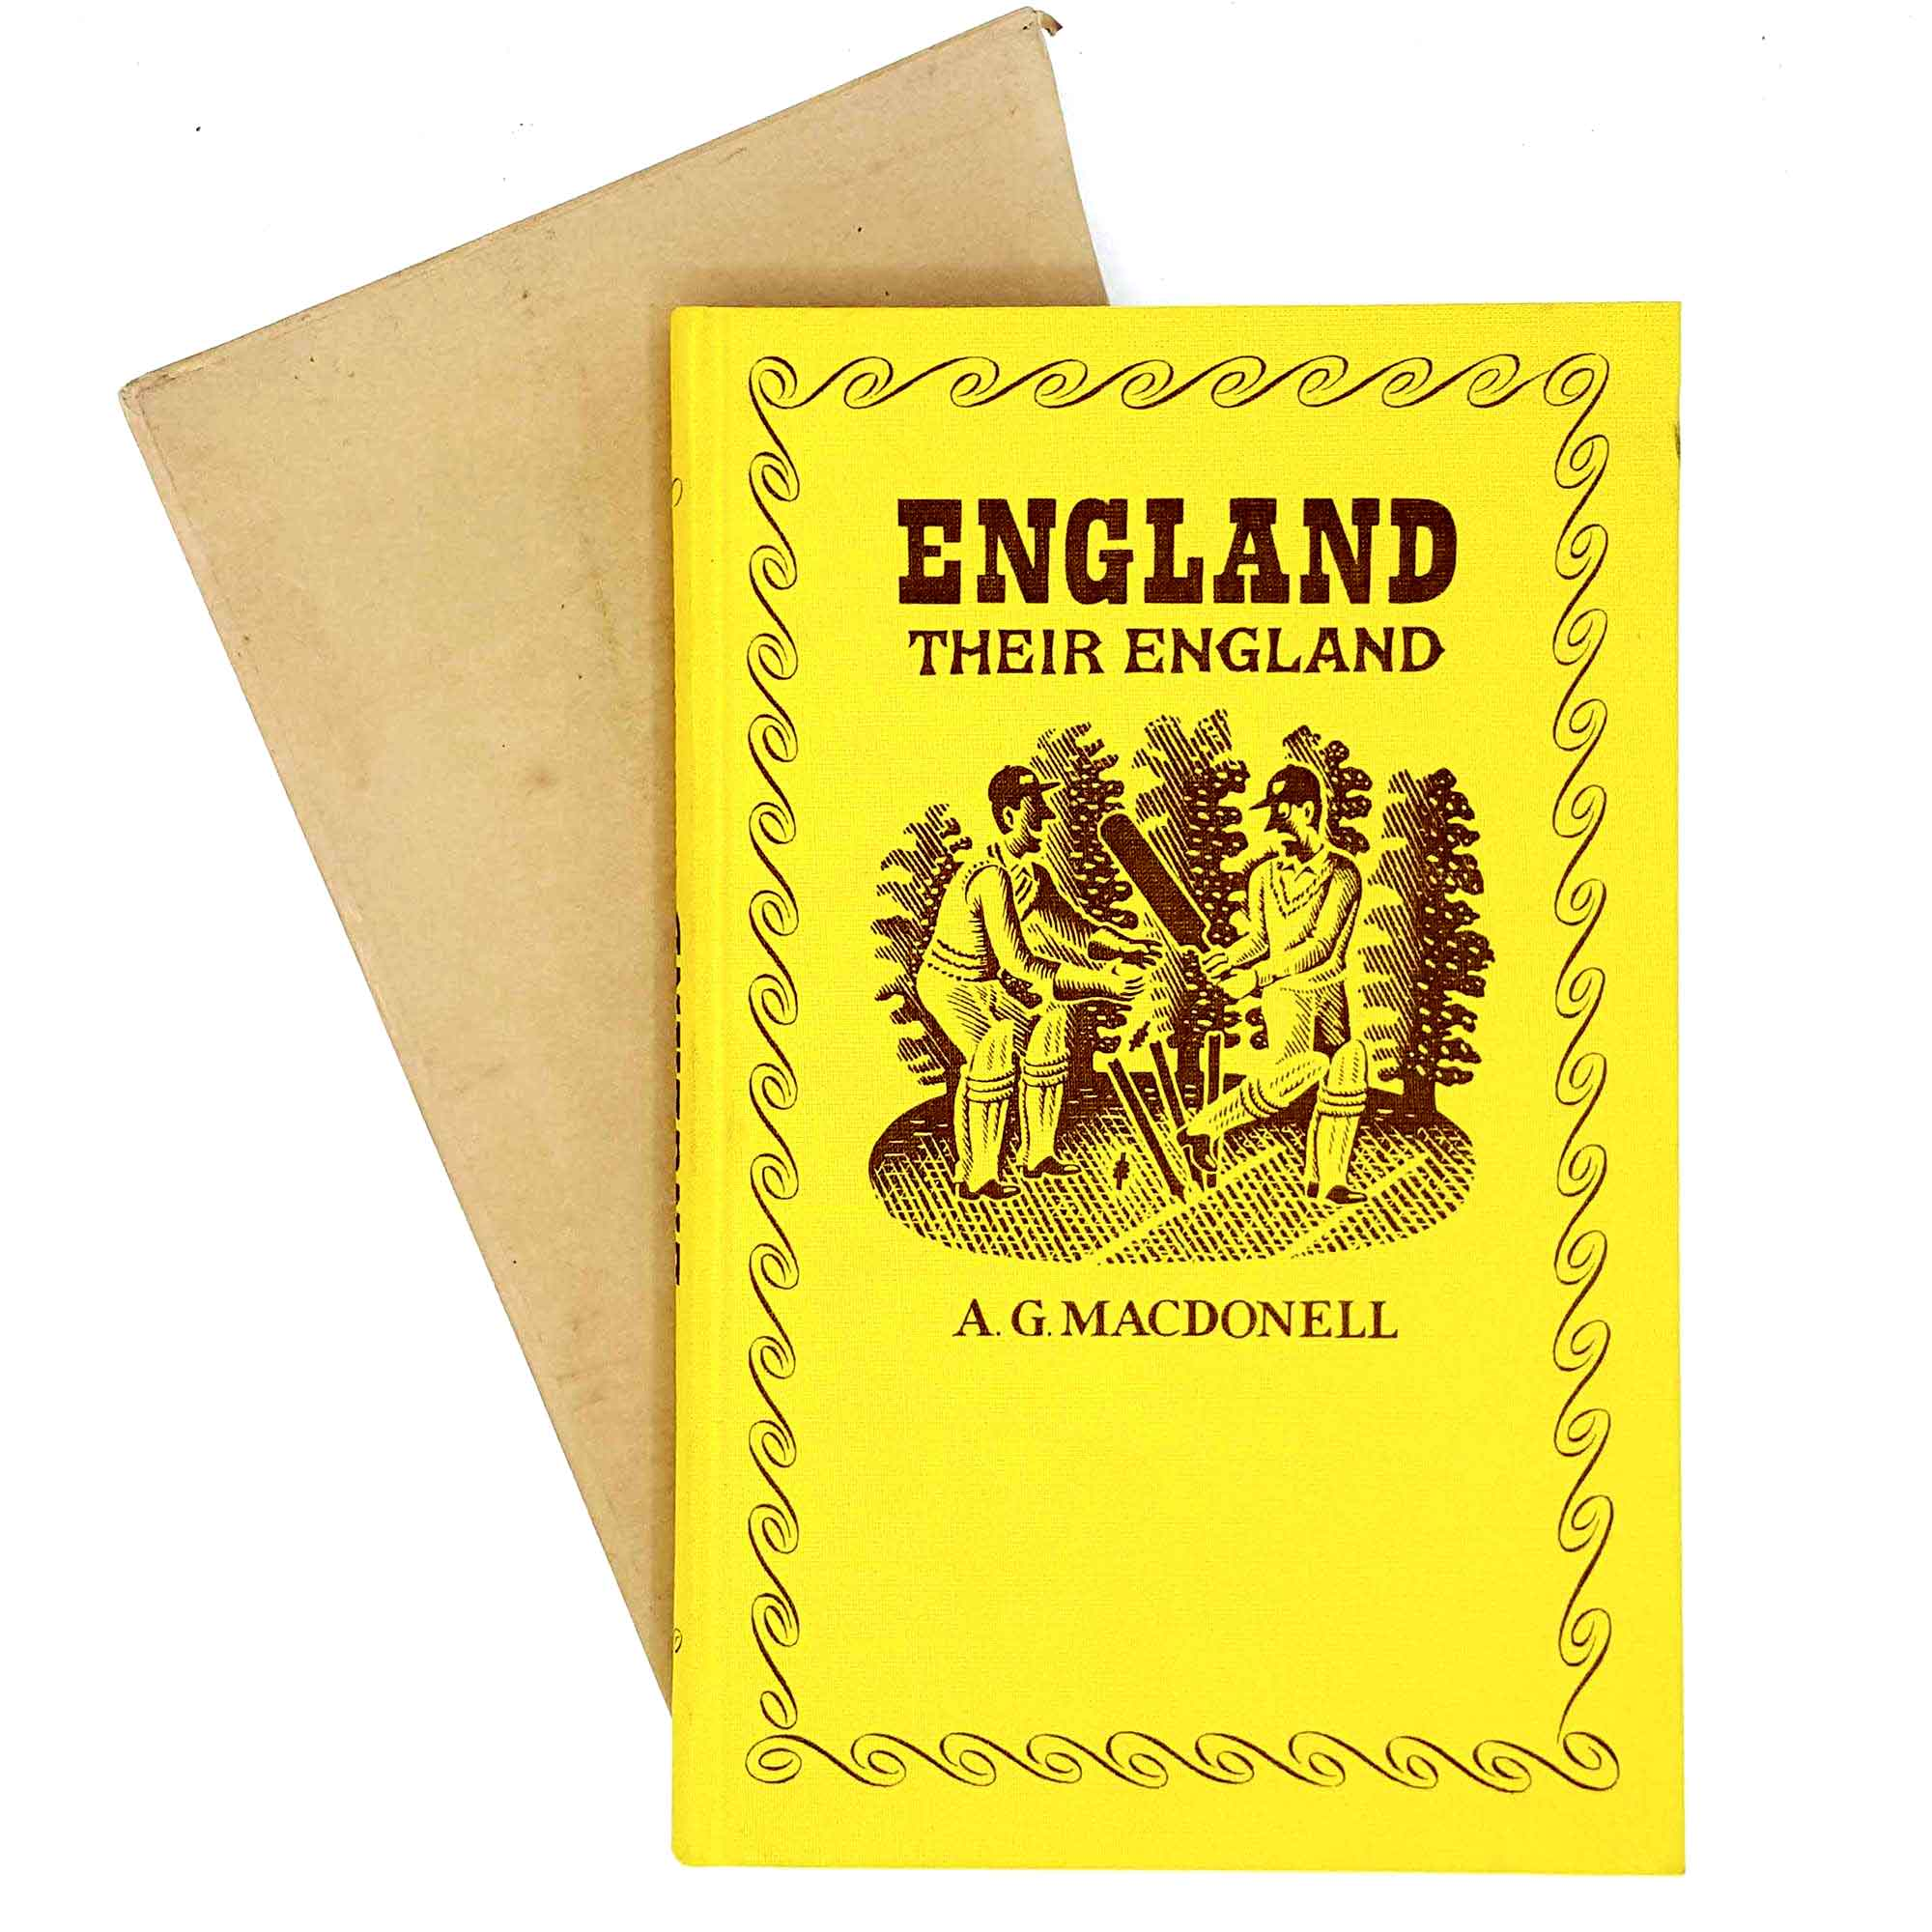 Illustrated Their England by A. G. MacDonell 1986